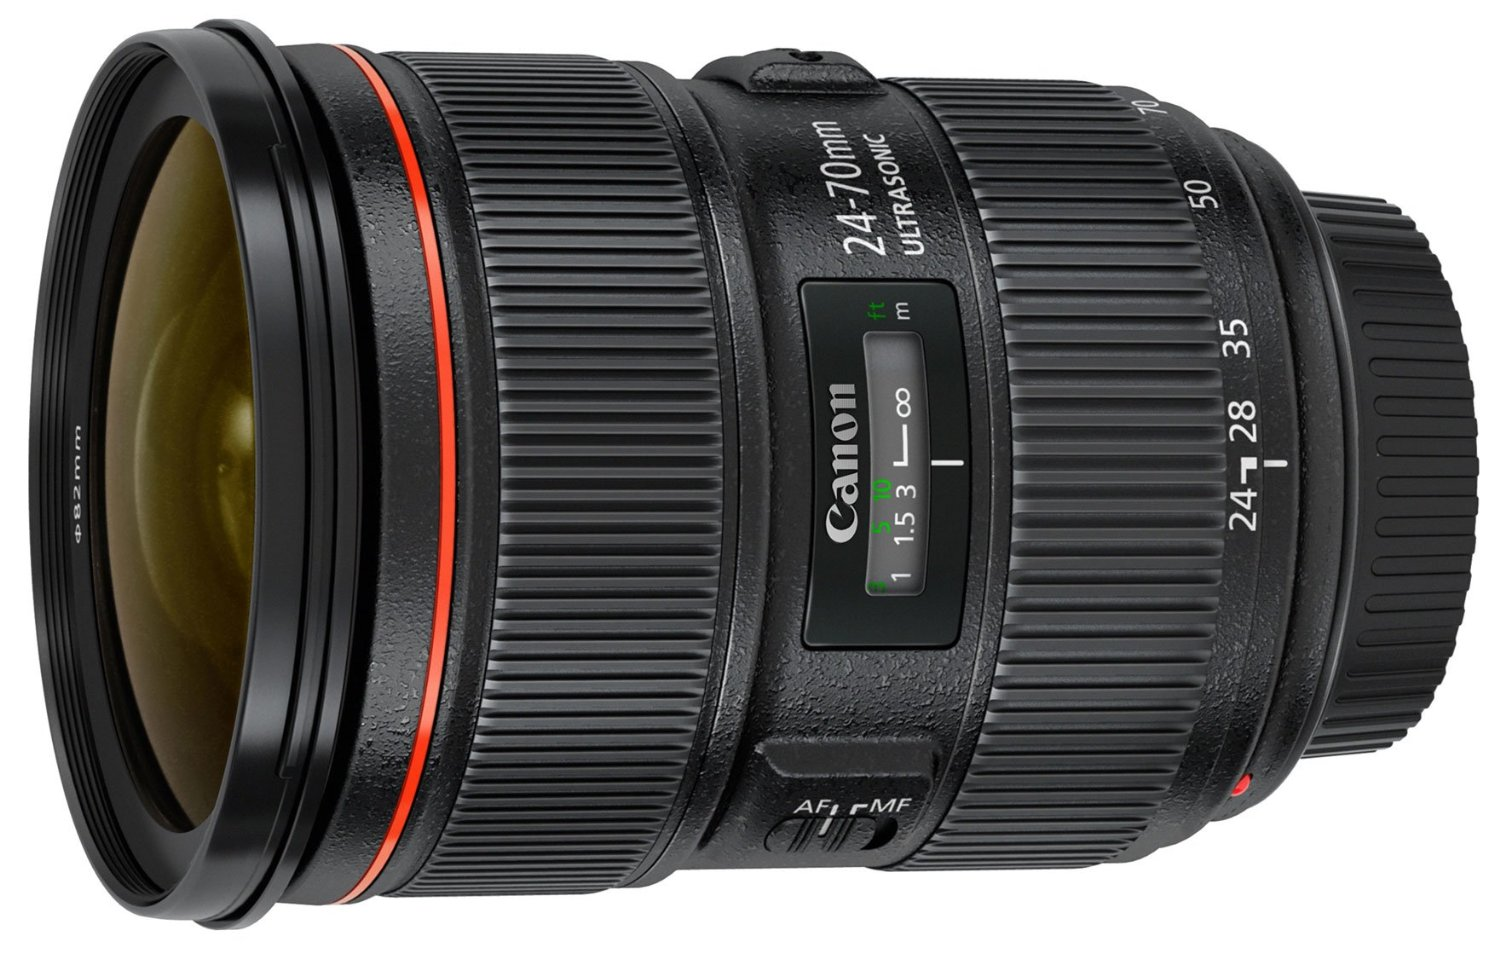 Canon's legendary [24-70mm f/2.8L Standard Zoom Lens](https://www.amazon.com/Canon-24-70mm-2-8L-Standard-Zoom/dp/B0076BNK30?SubscriptionId=AKIAJ7T5BOVUVRD2EFYQ&linkCode=xm2&creativeASIN=B0076BNK30&creative=165953&psc=1&camp=2025&tag=toolsandtoys-20) is one of the most coveted lenses for any professional photographer.